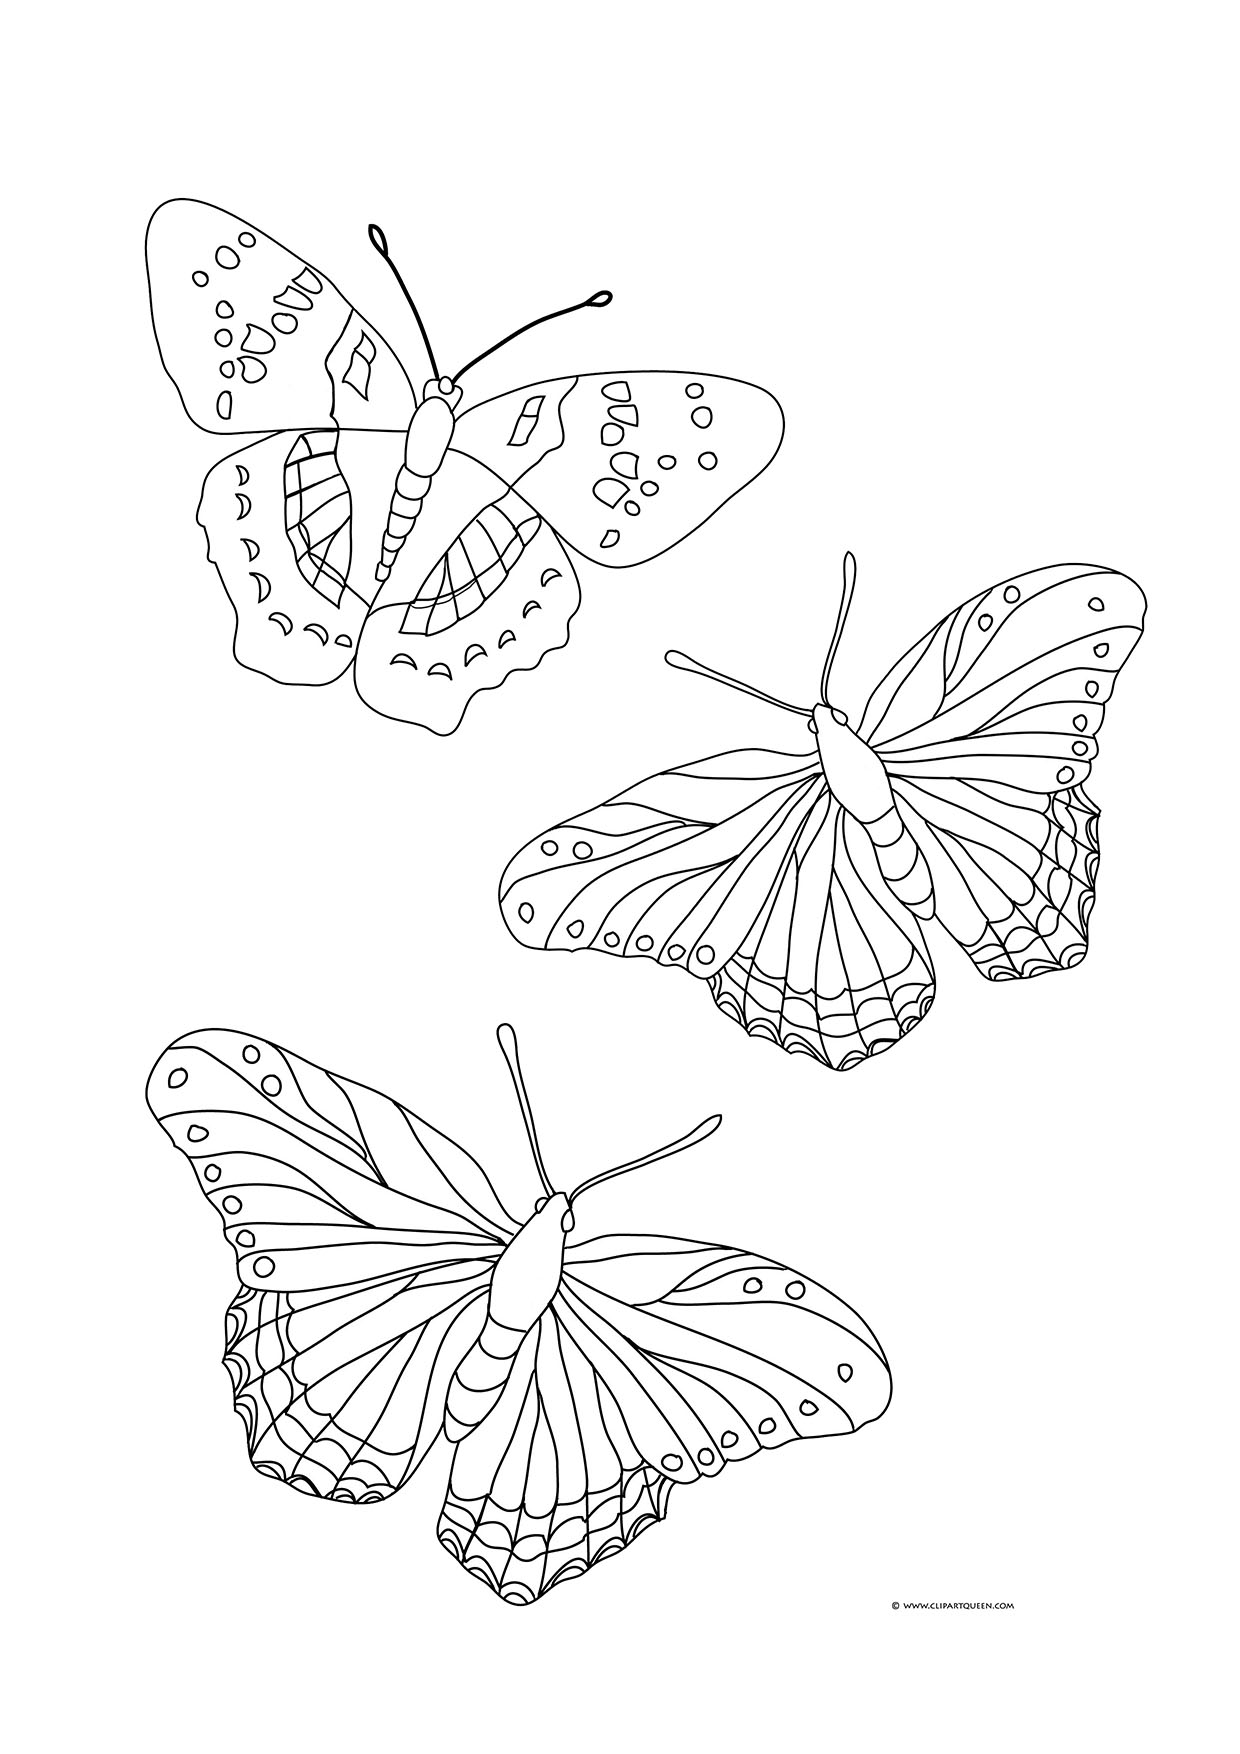 Butterfly coloring page with three butterflies